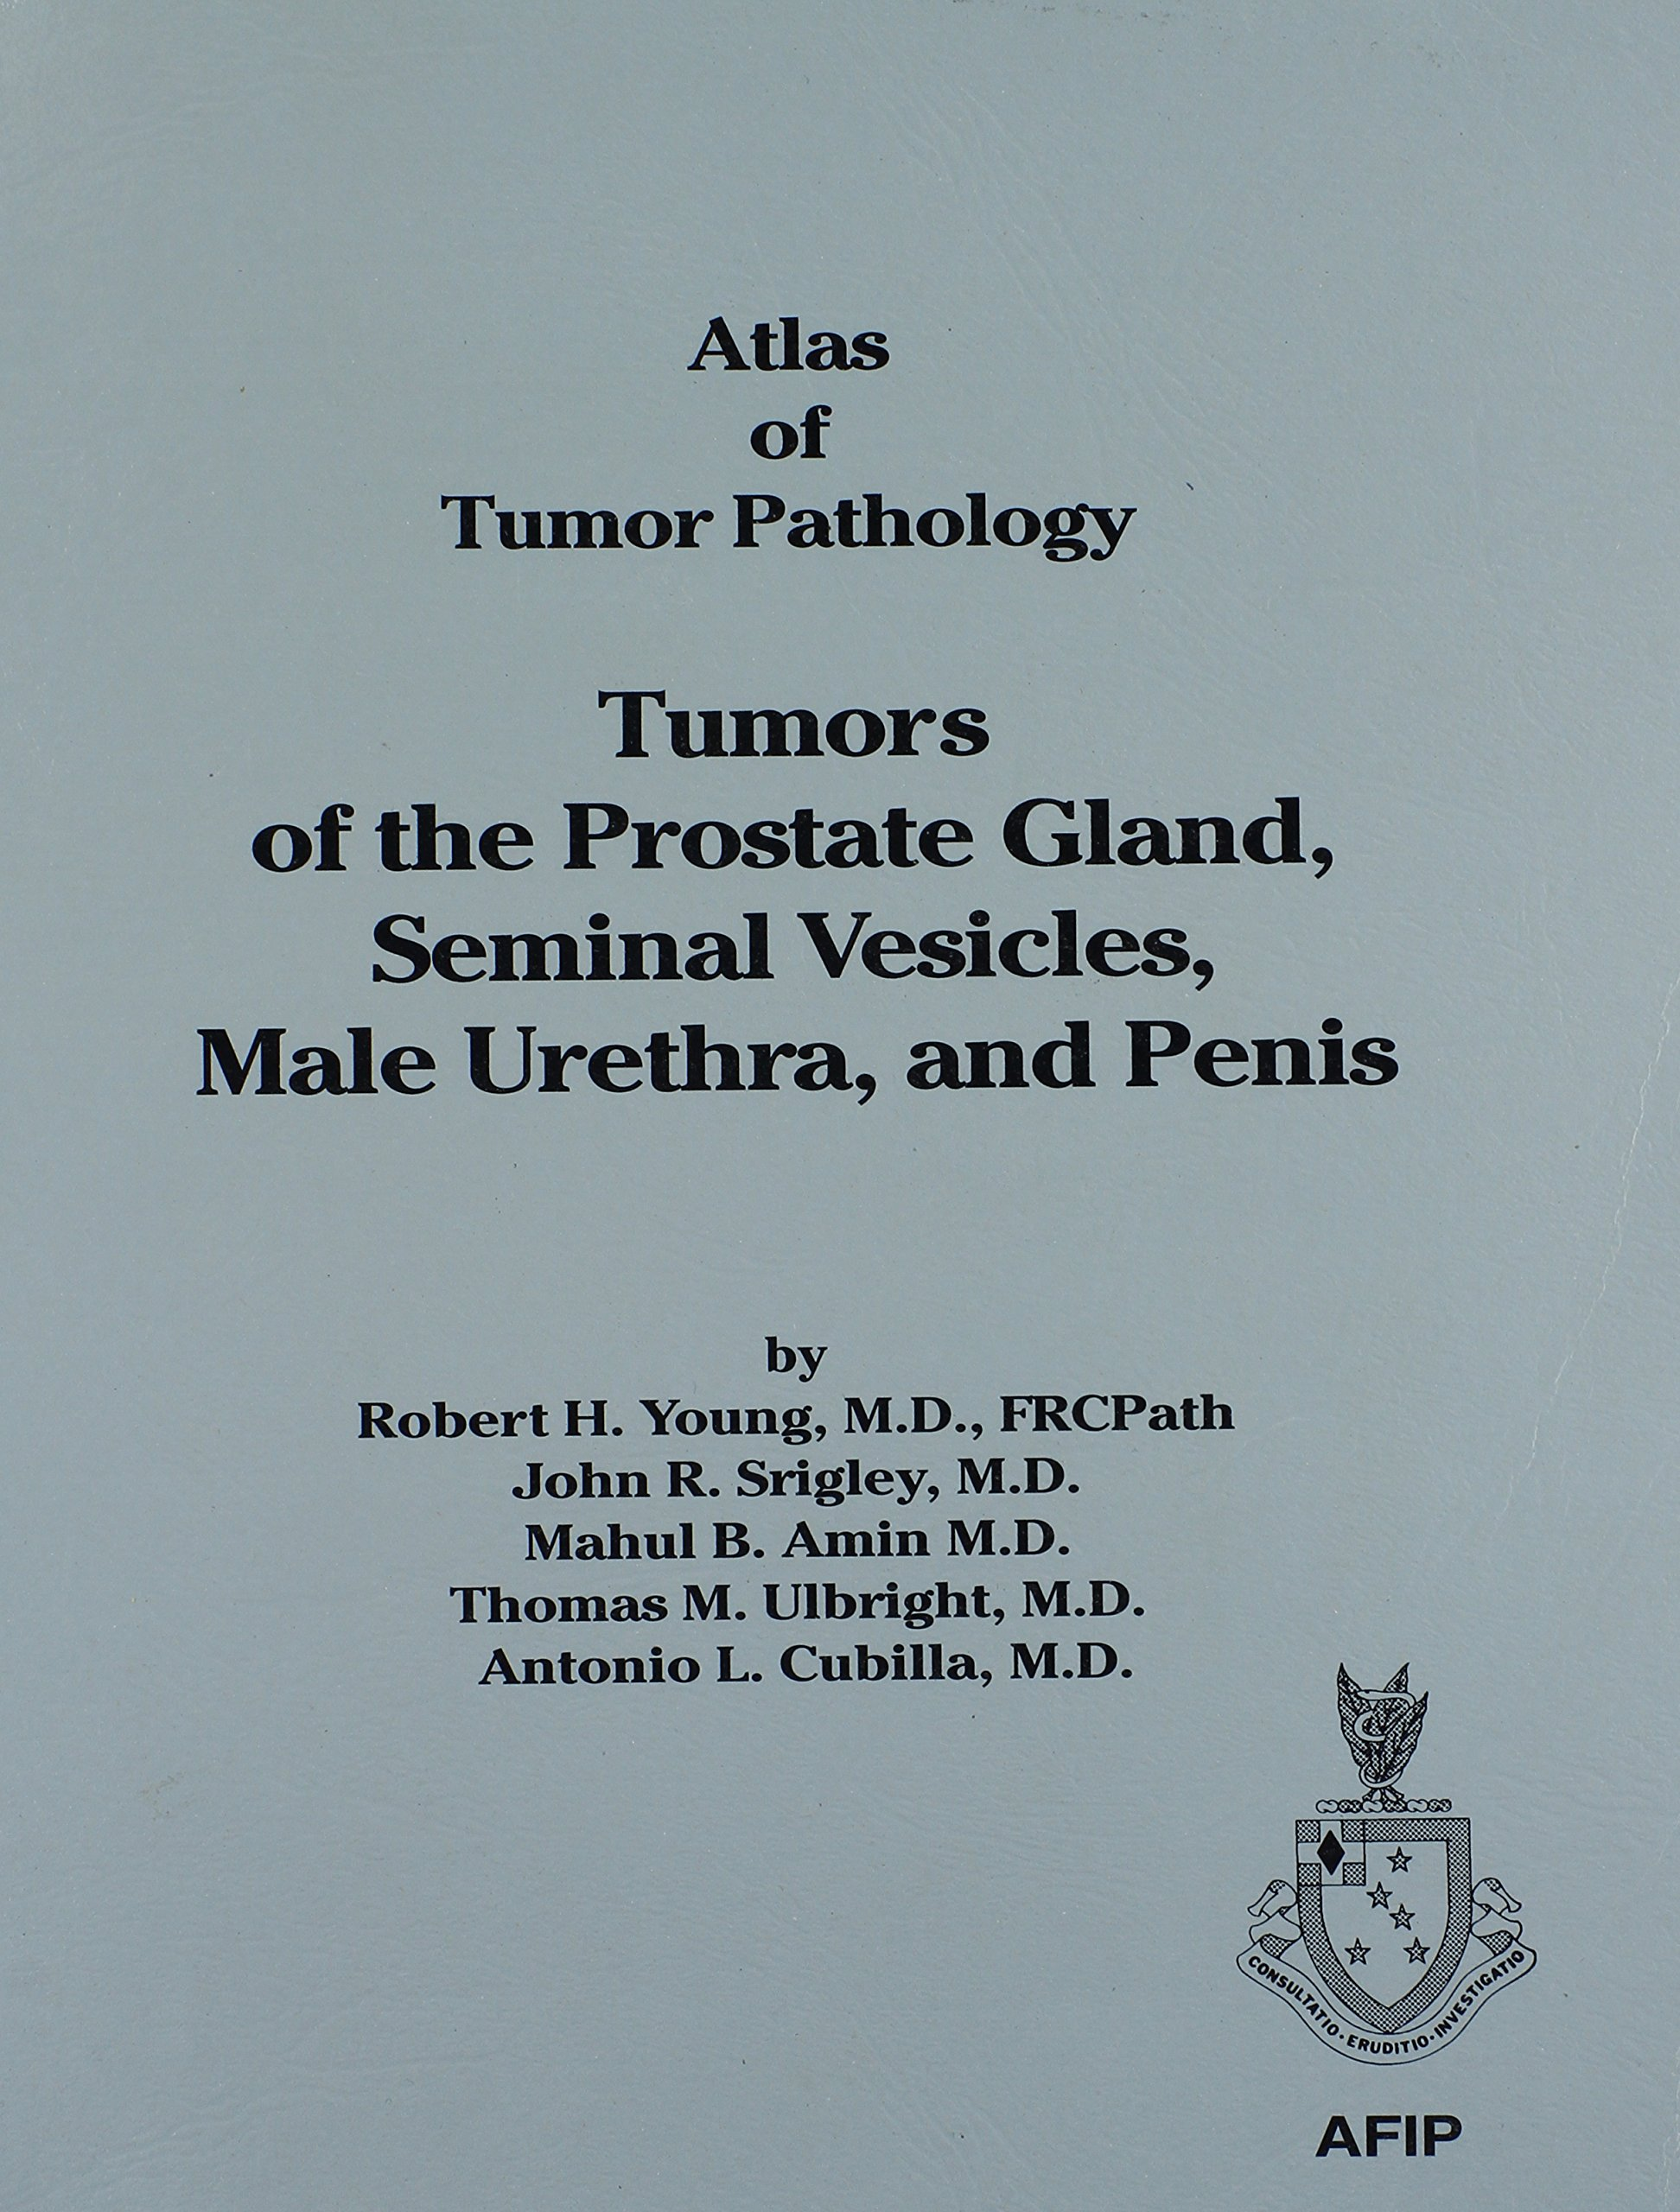 Download Tumors of the Prostate, Seminal Vesicles, Male Urethra and Penis (Atlas of Tumor Pathology (AFIP) 3rd Series) ebook